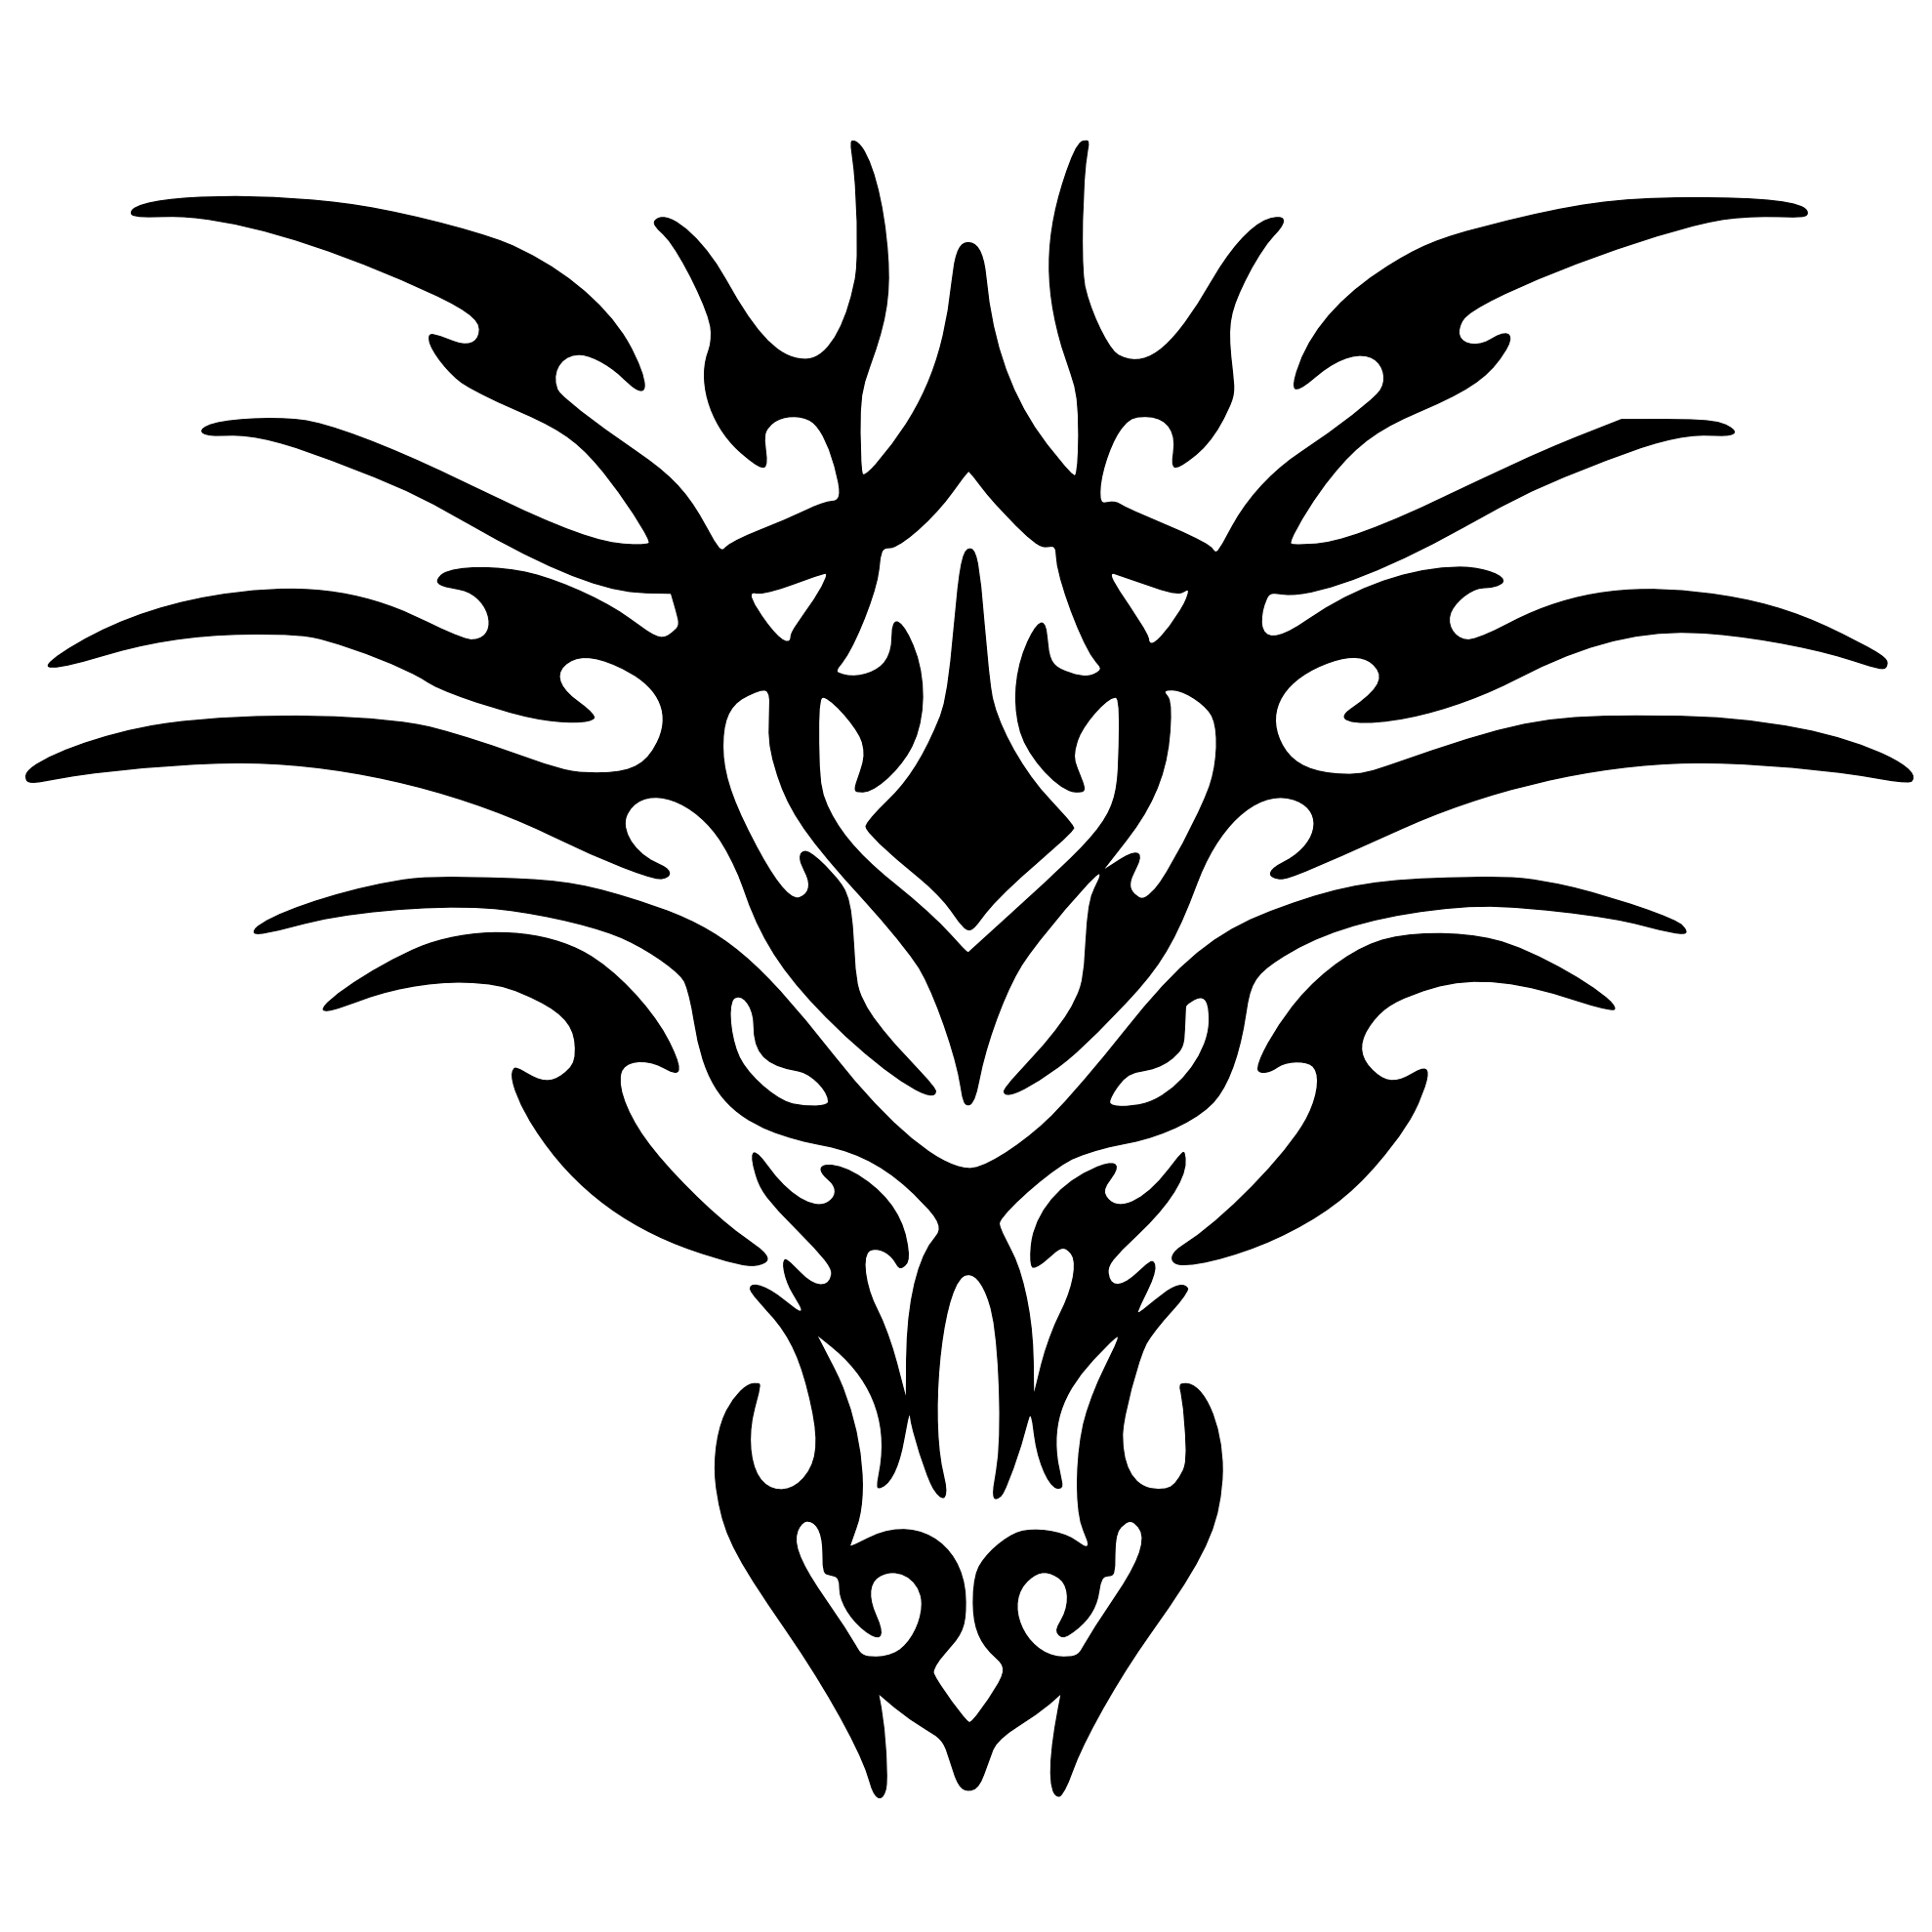 Download Black Tattoo Dragon Png Images HQ PNG Image ...